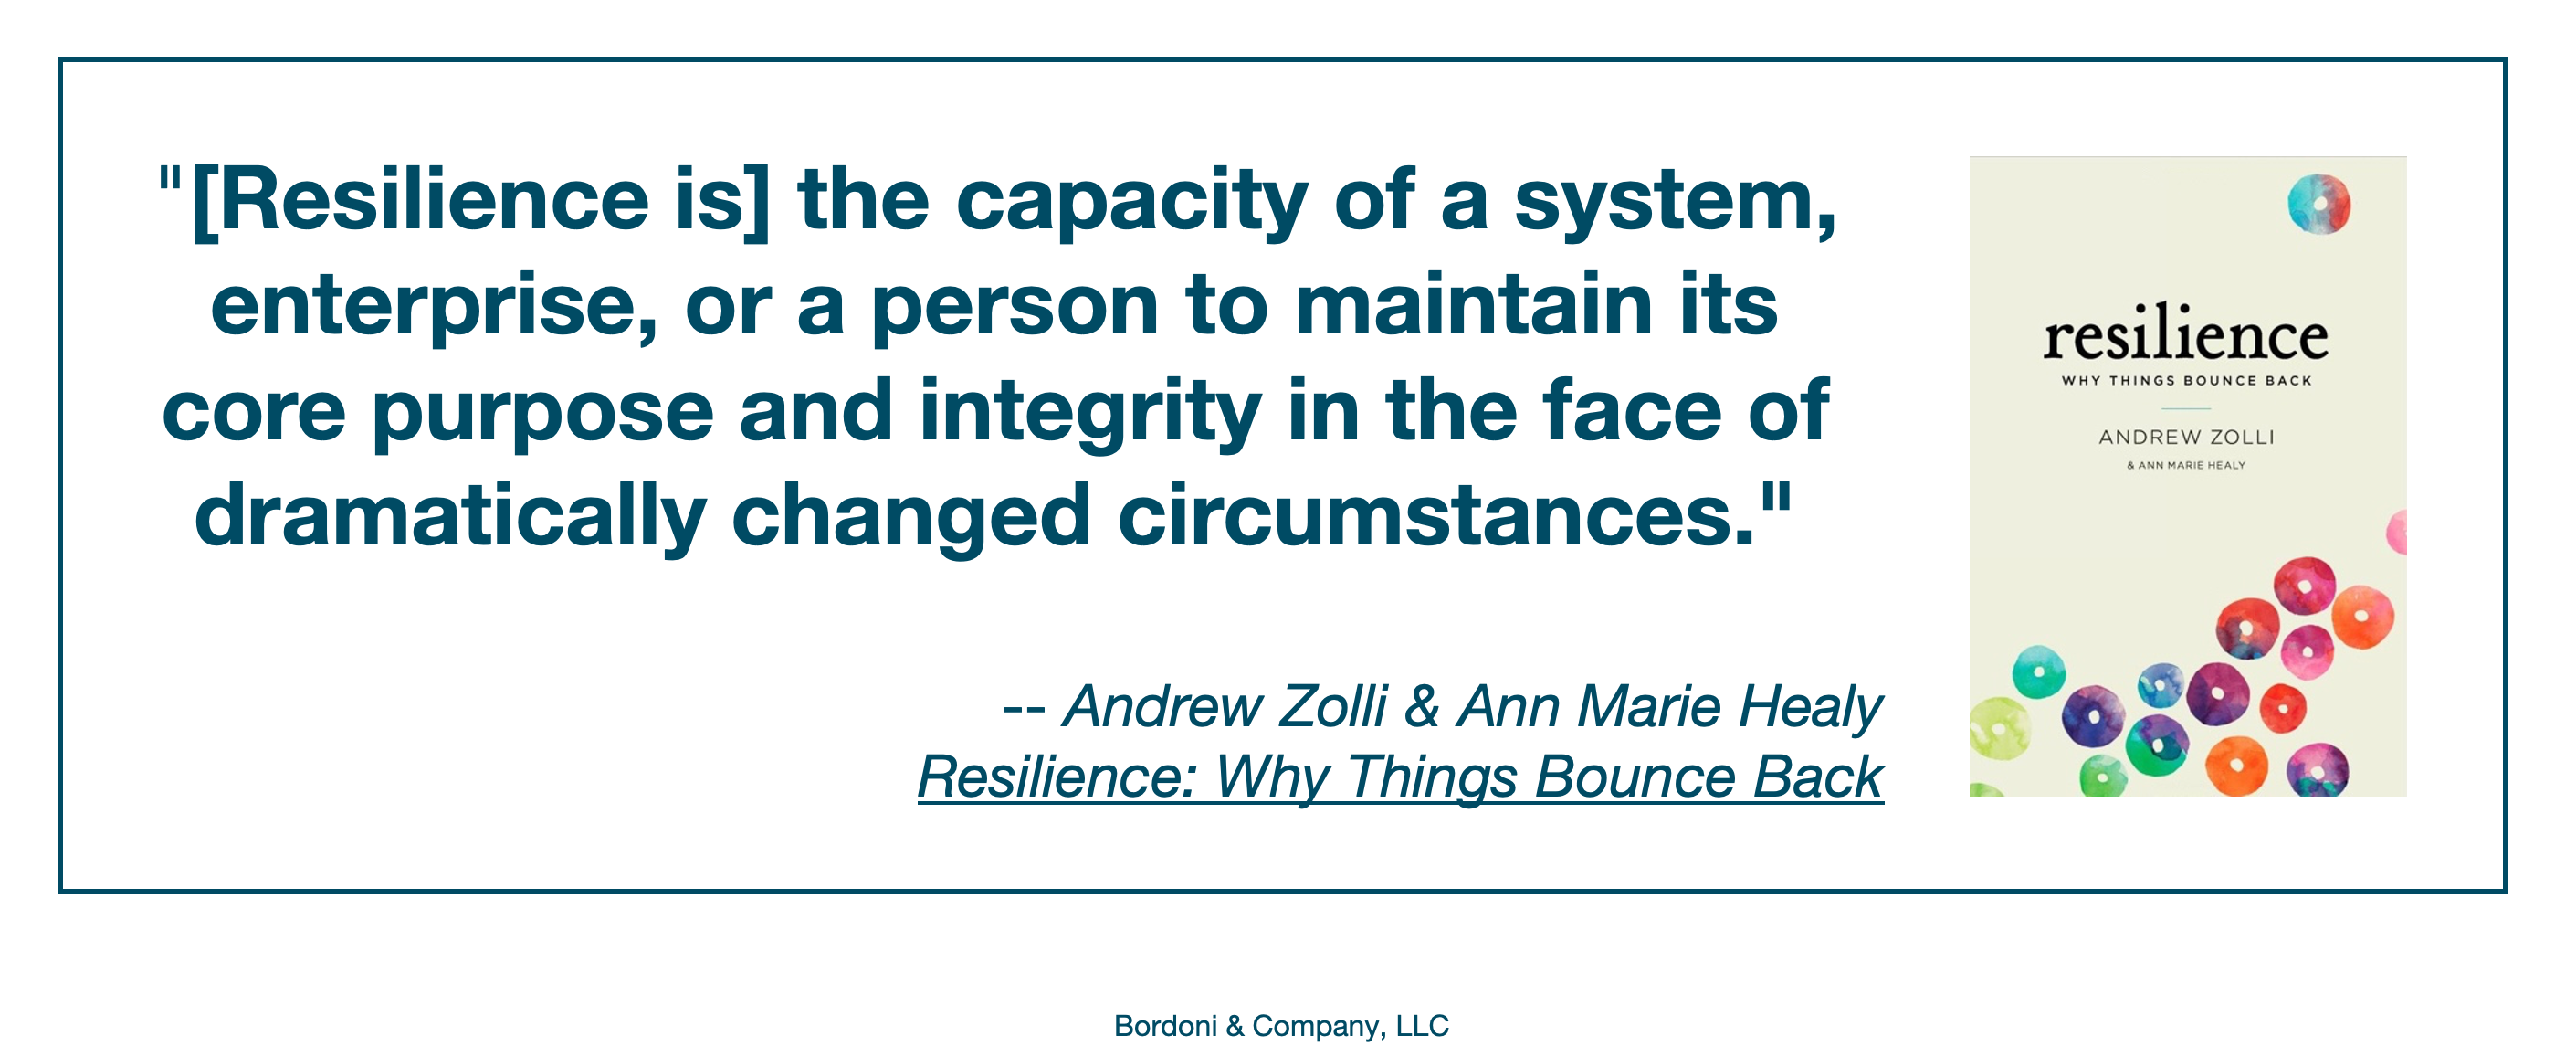 A working definition of resilience | Bordoni & Company